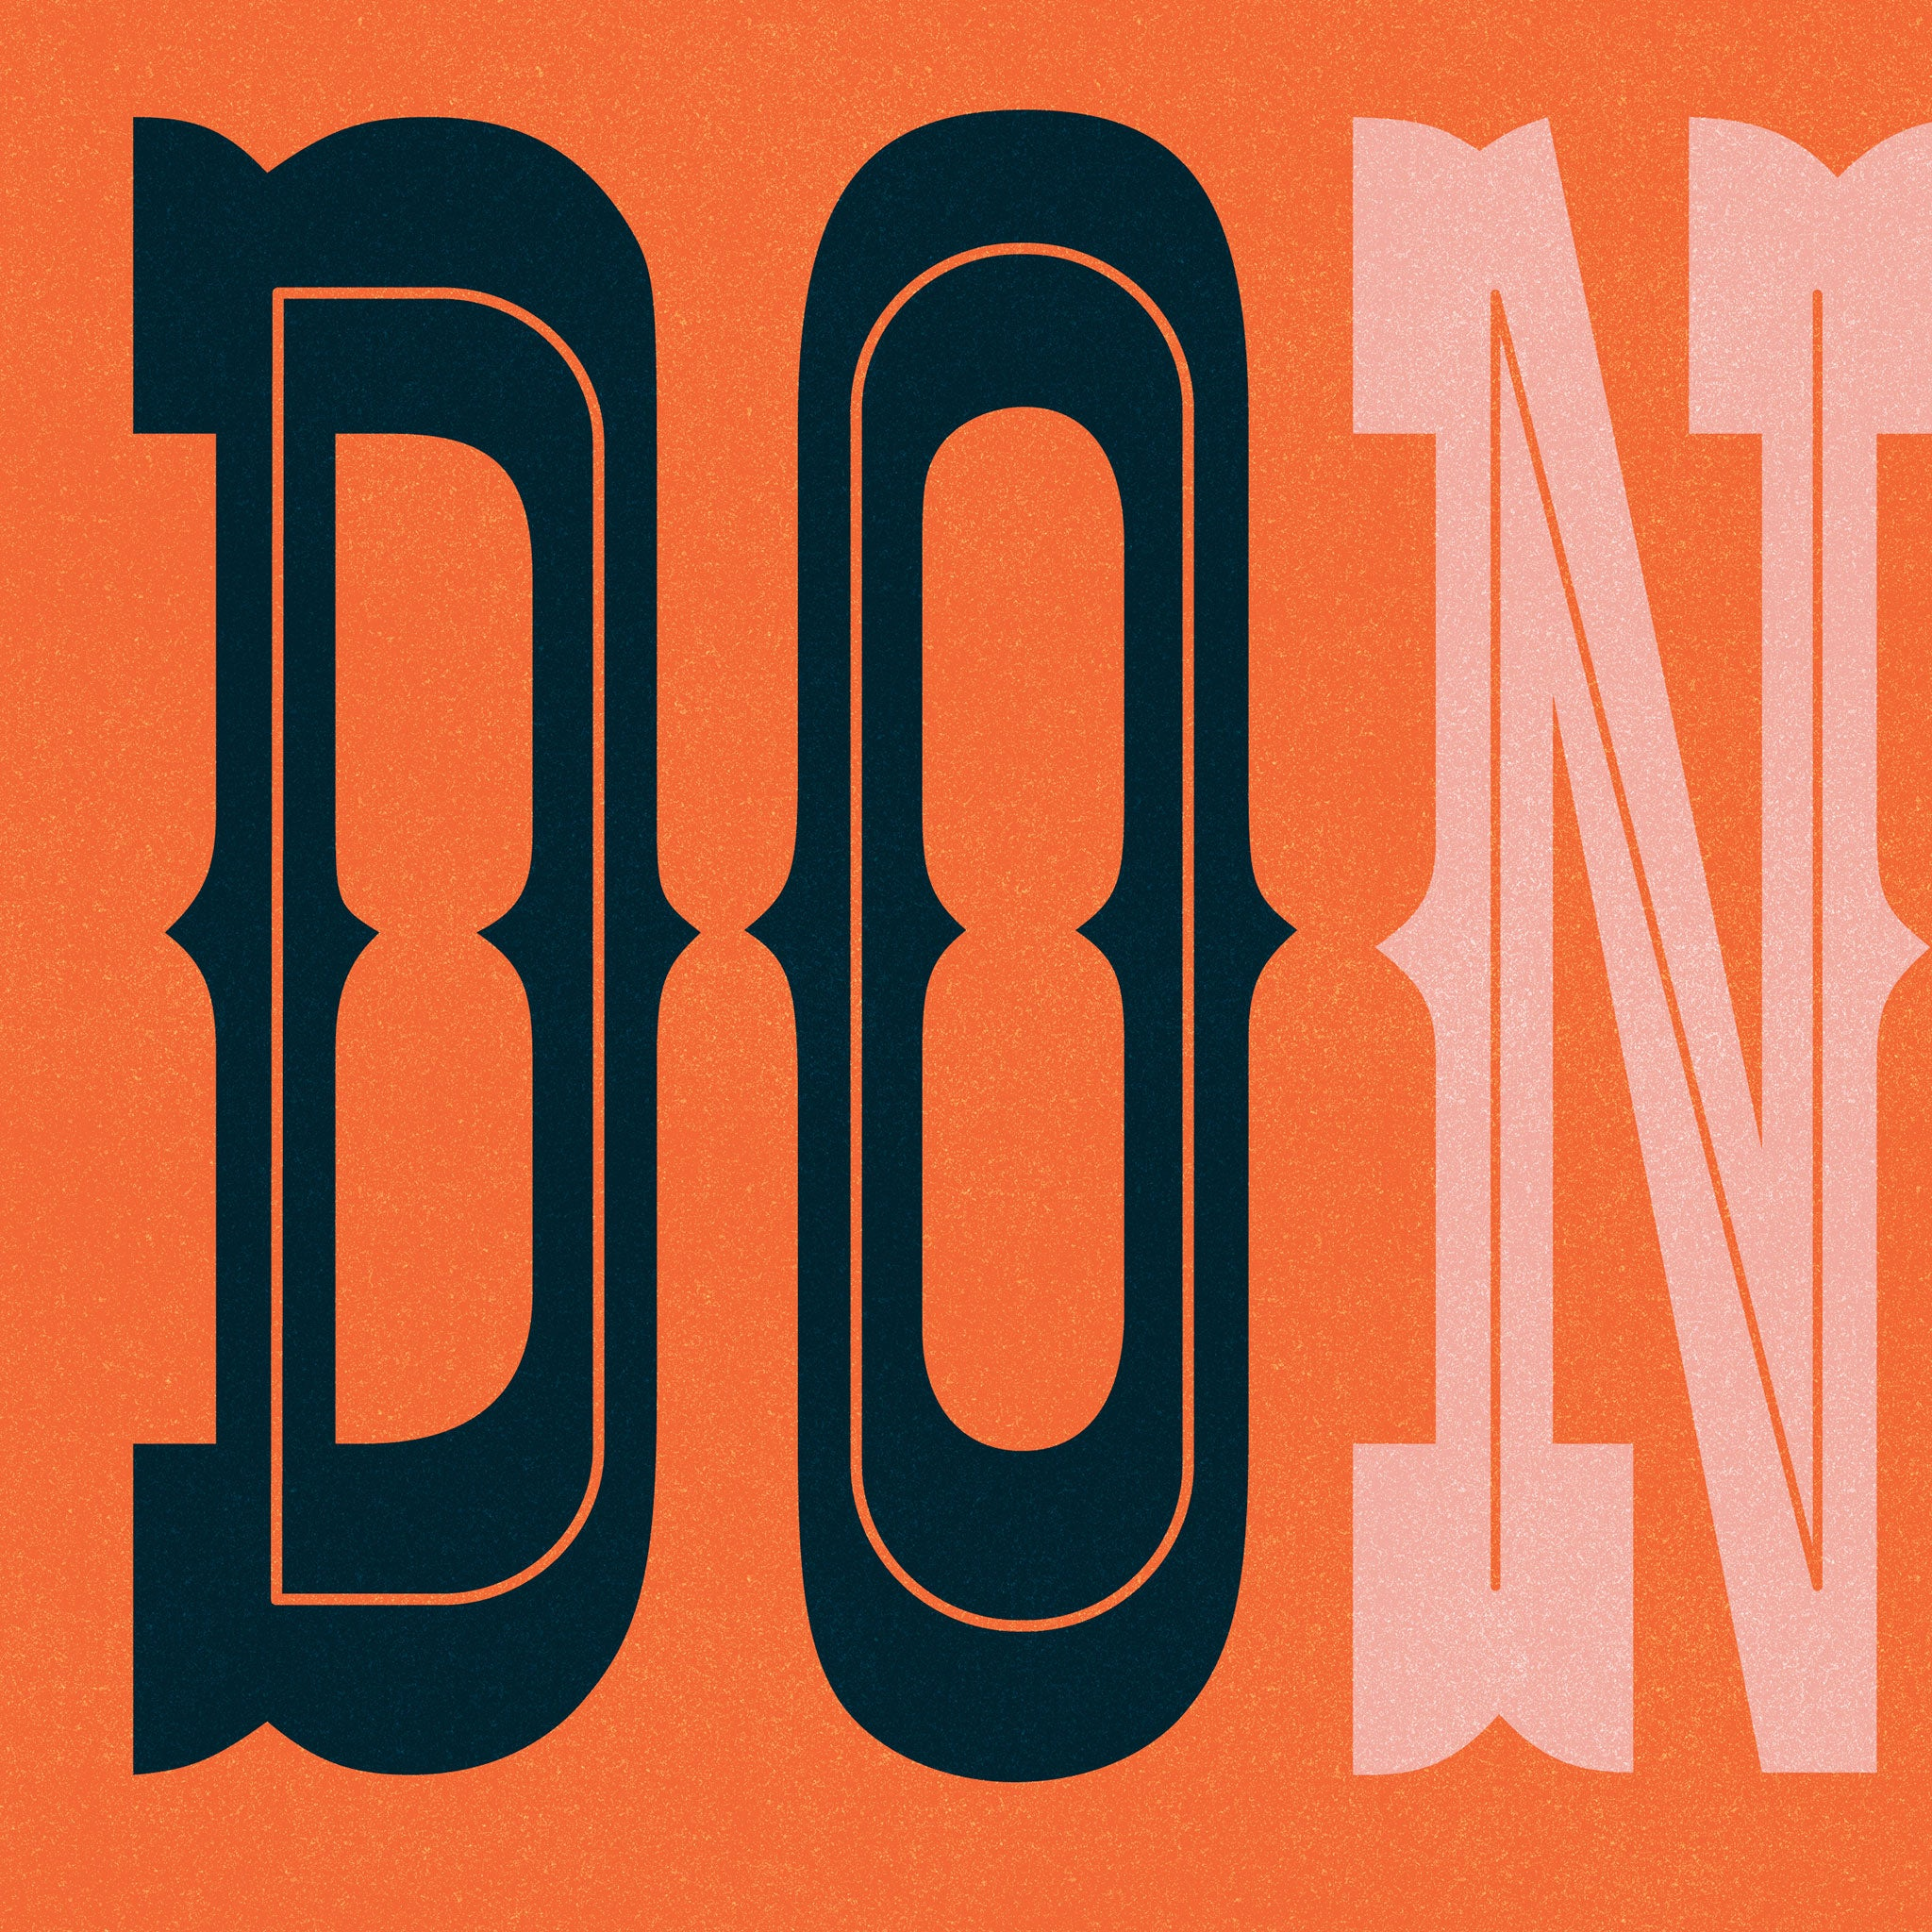 DON'T QUIT, DO IT! - Giclée Print